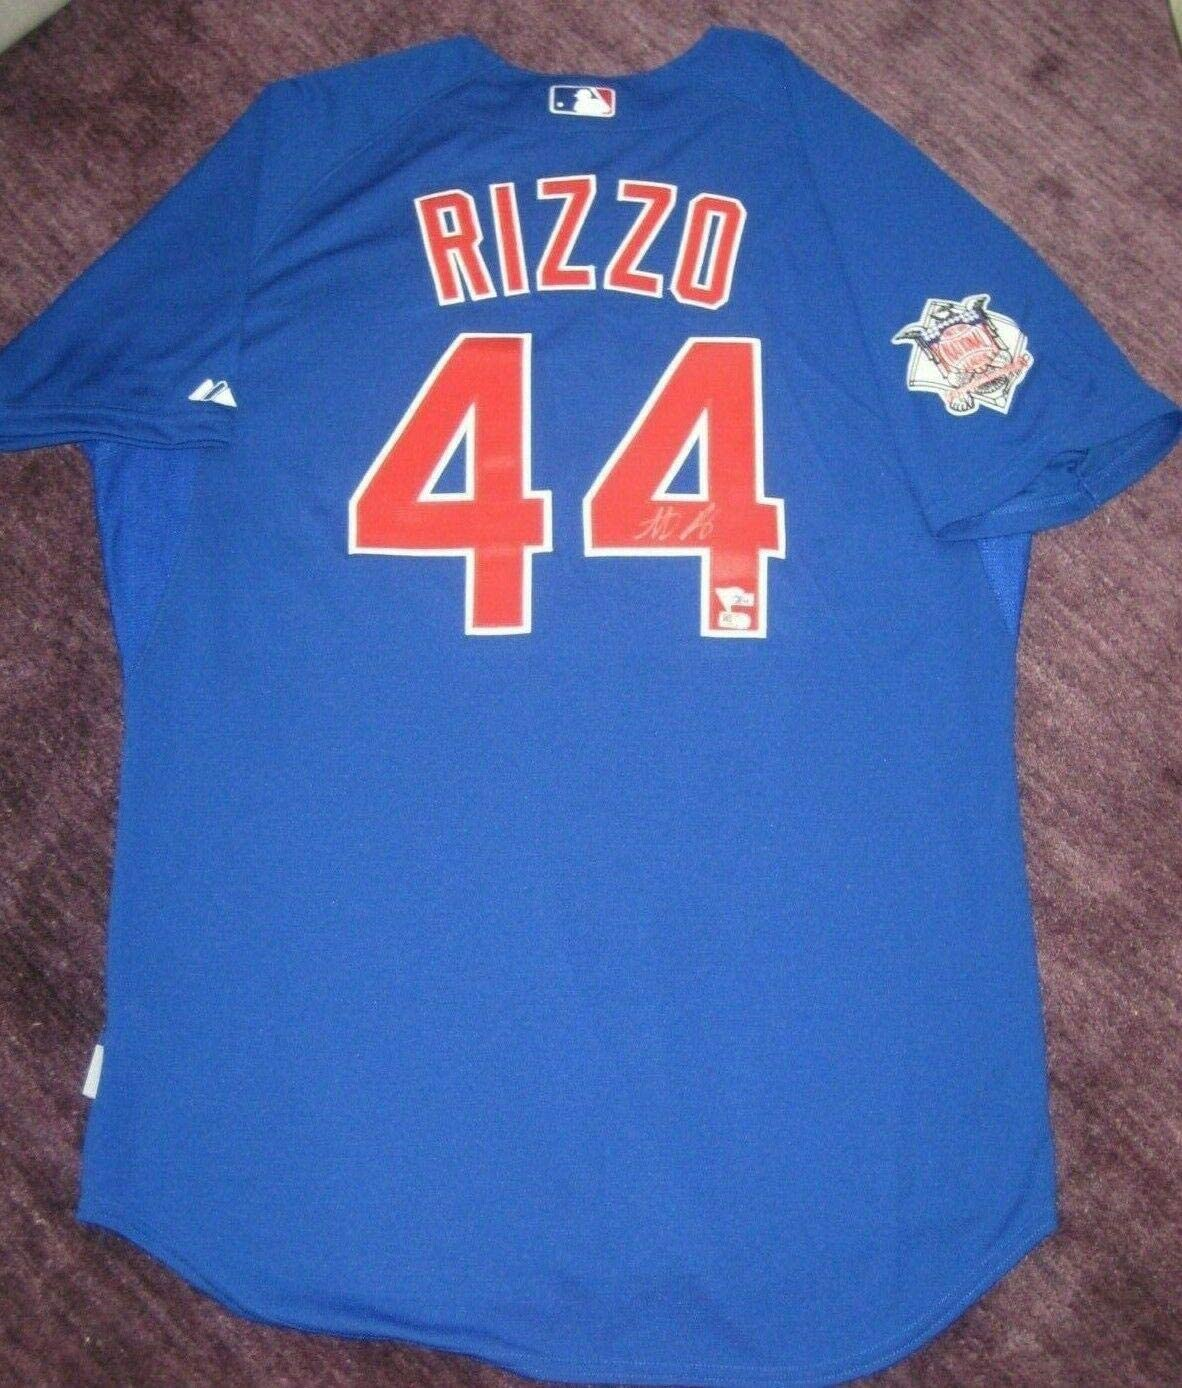 Signed Anthony Rizzo Jersey - Majestic - Autographed MLB Jerseys